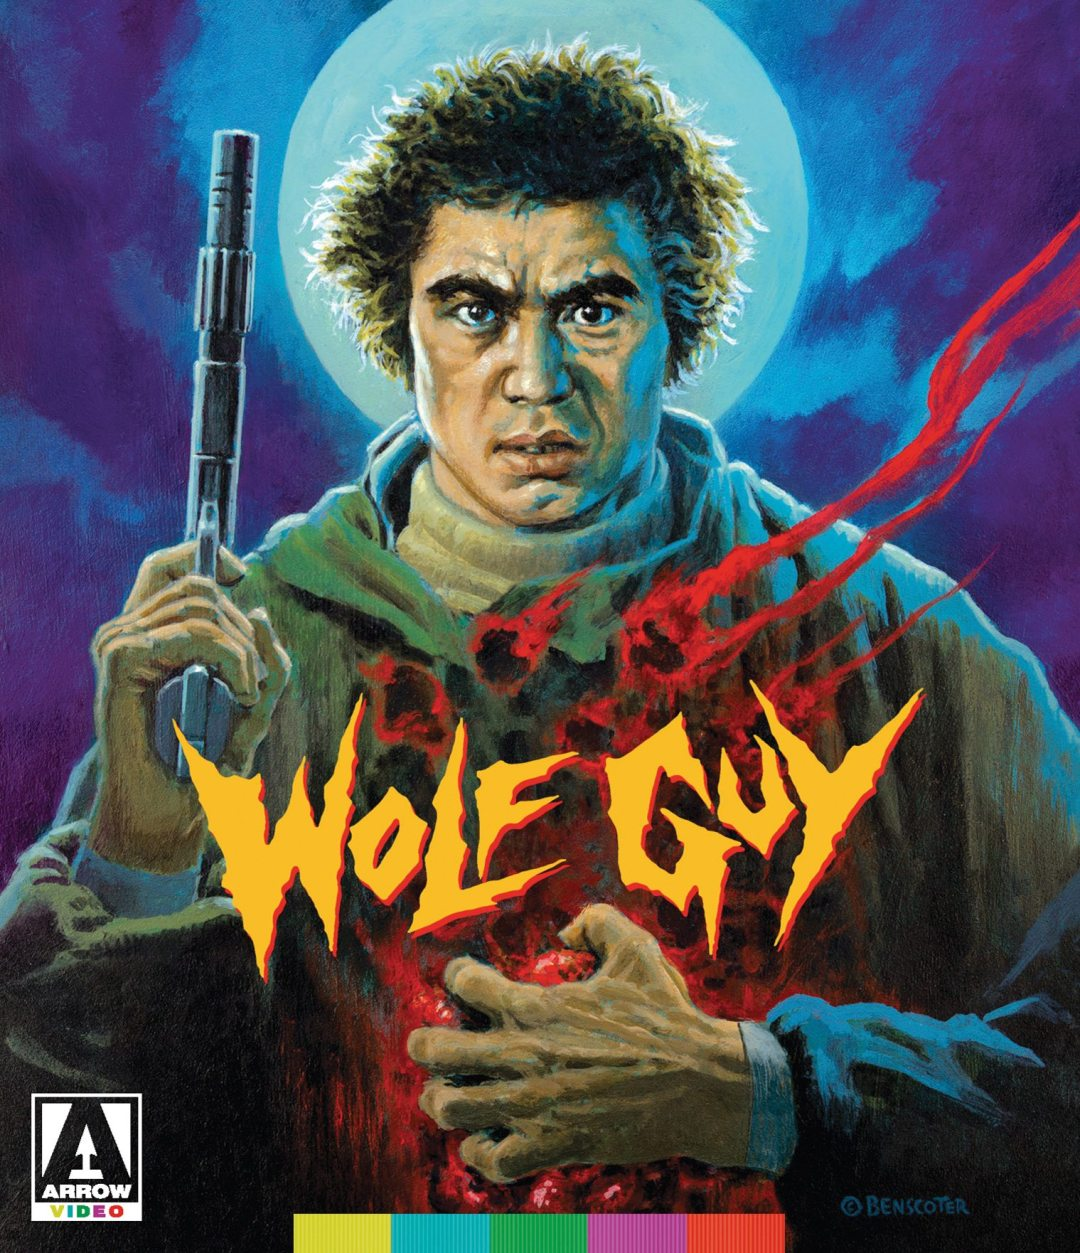 Wolf Guy – Blu-ray/DVD Release